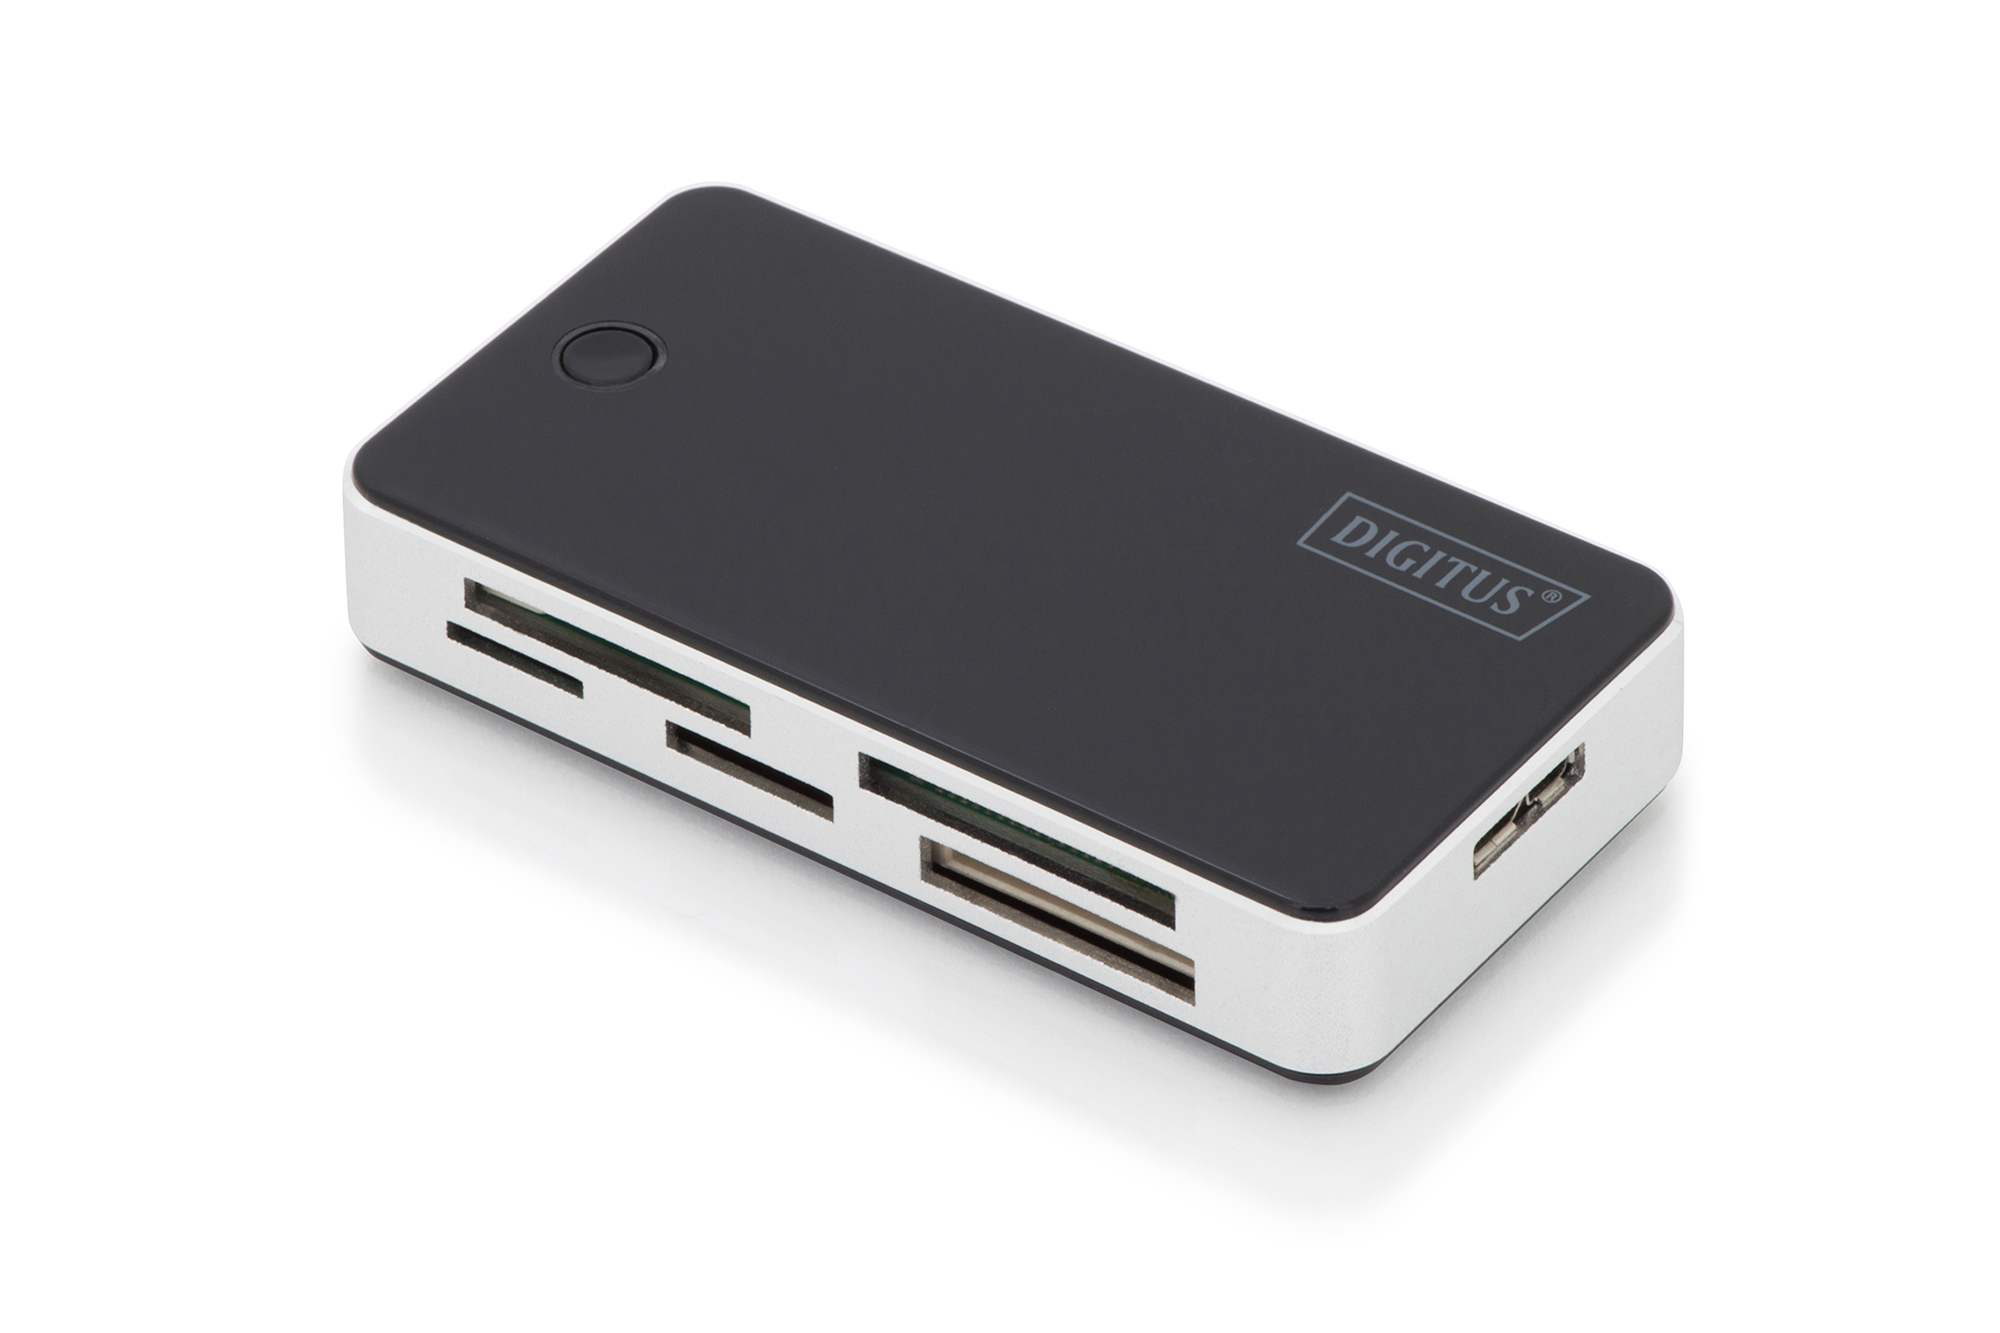 Digitus Card Reader All in One USB 3.0